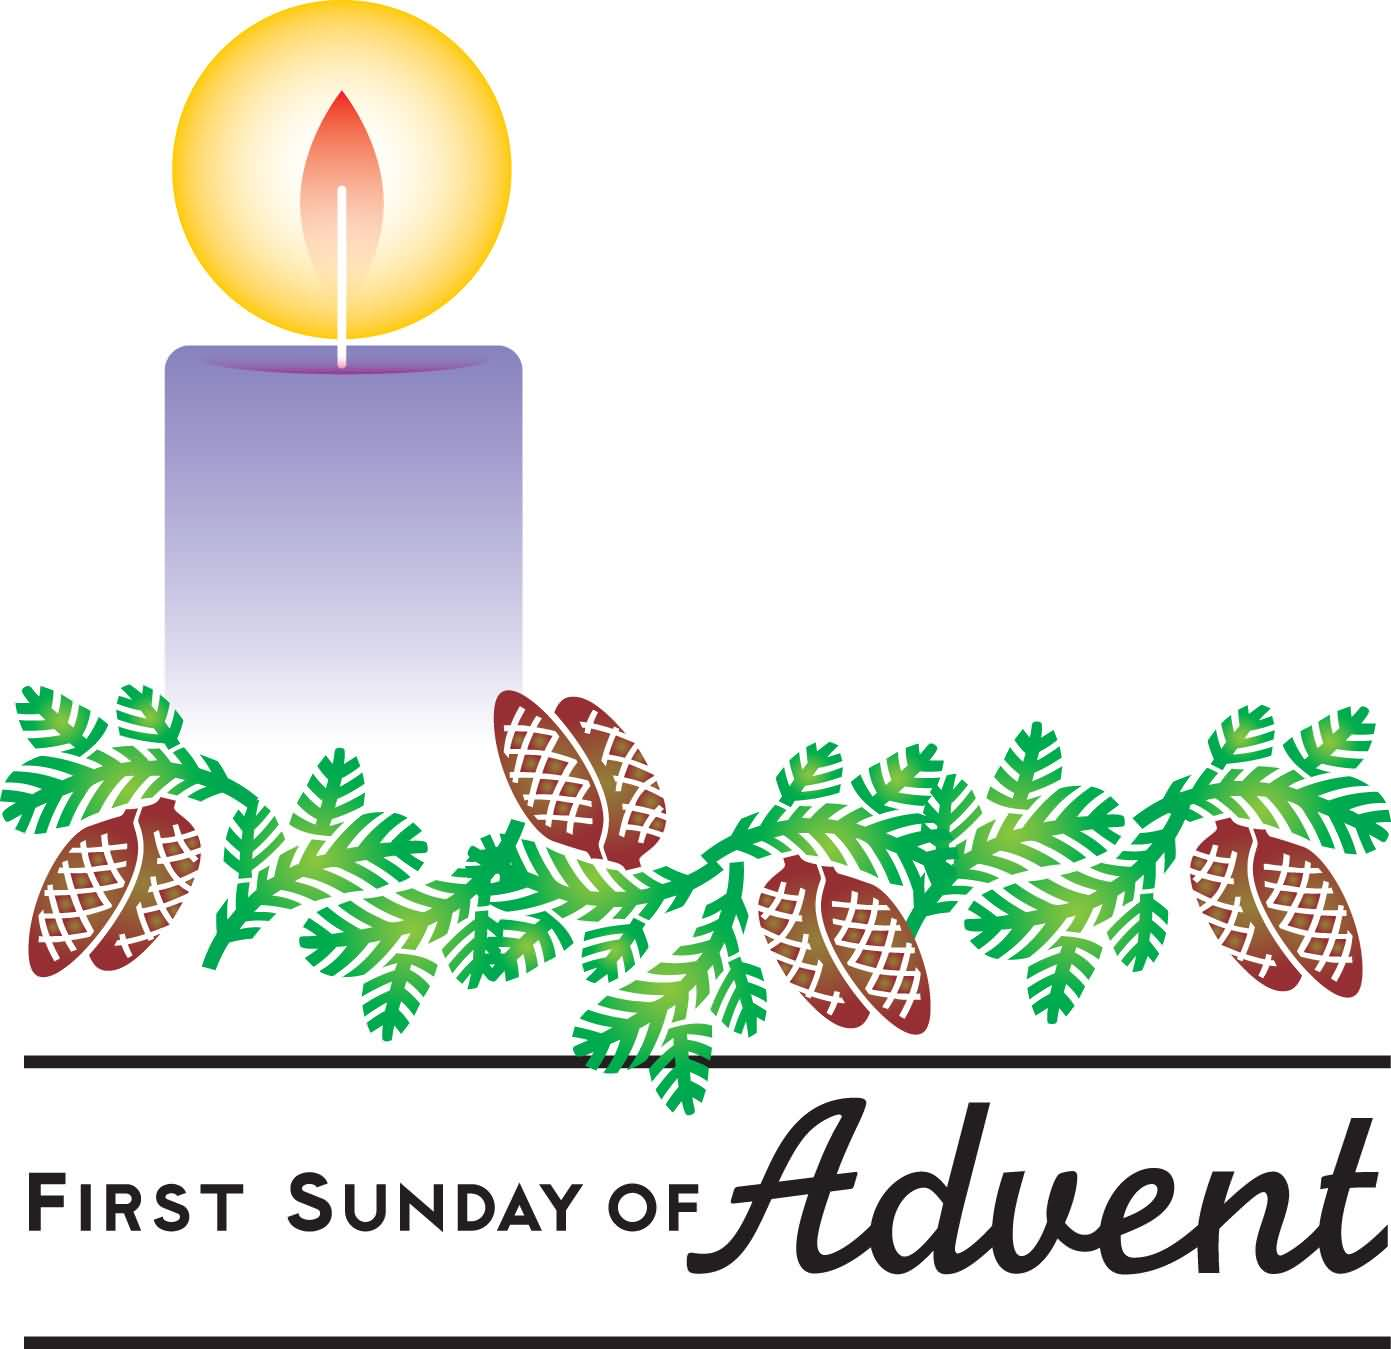 Second sunday of advent clipart